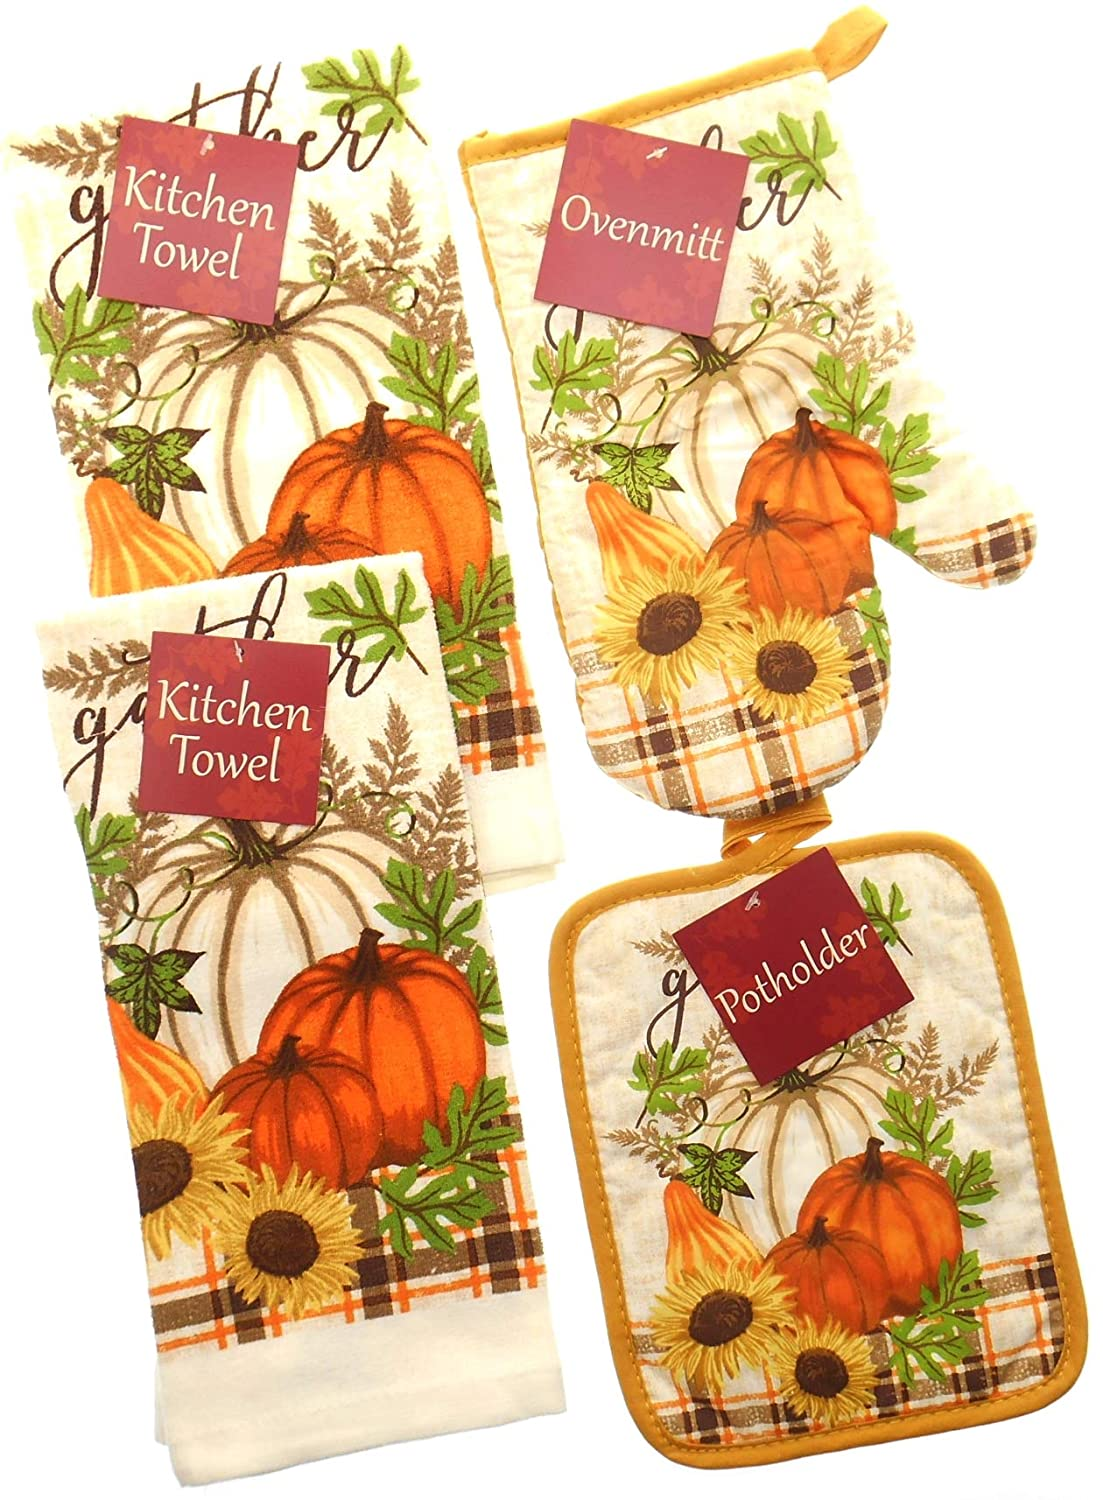 Gather with Orange and Brown Plaid Accent Kitchen Towel Set. Featuring Orange and White Pumpkin. Bundle of 4 Includes 2 Towels, 1 Oven Mitt and 1 Pot Holder. Fall Kitchen Towels Set. Mainstream